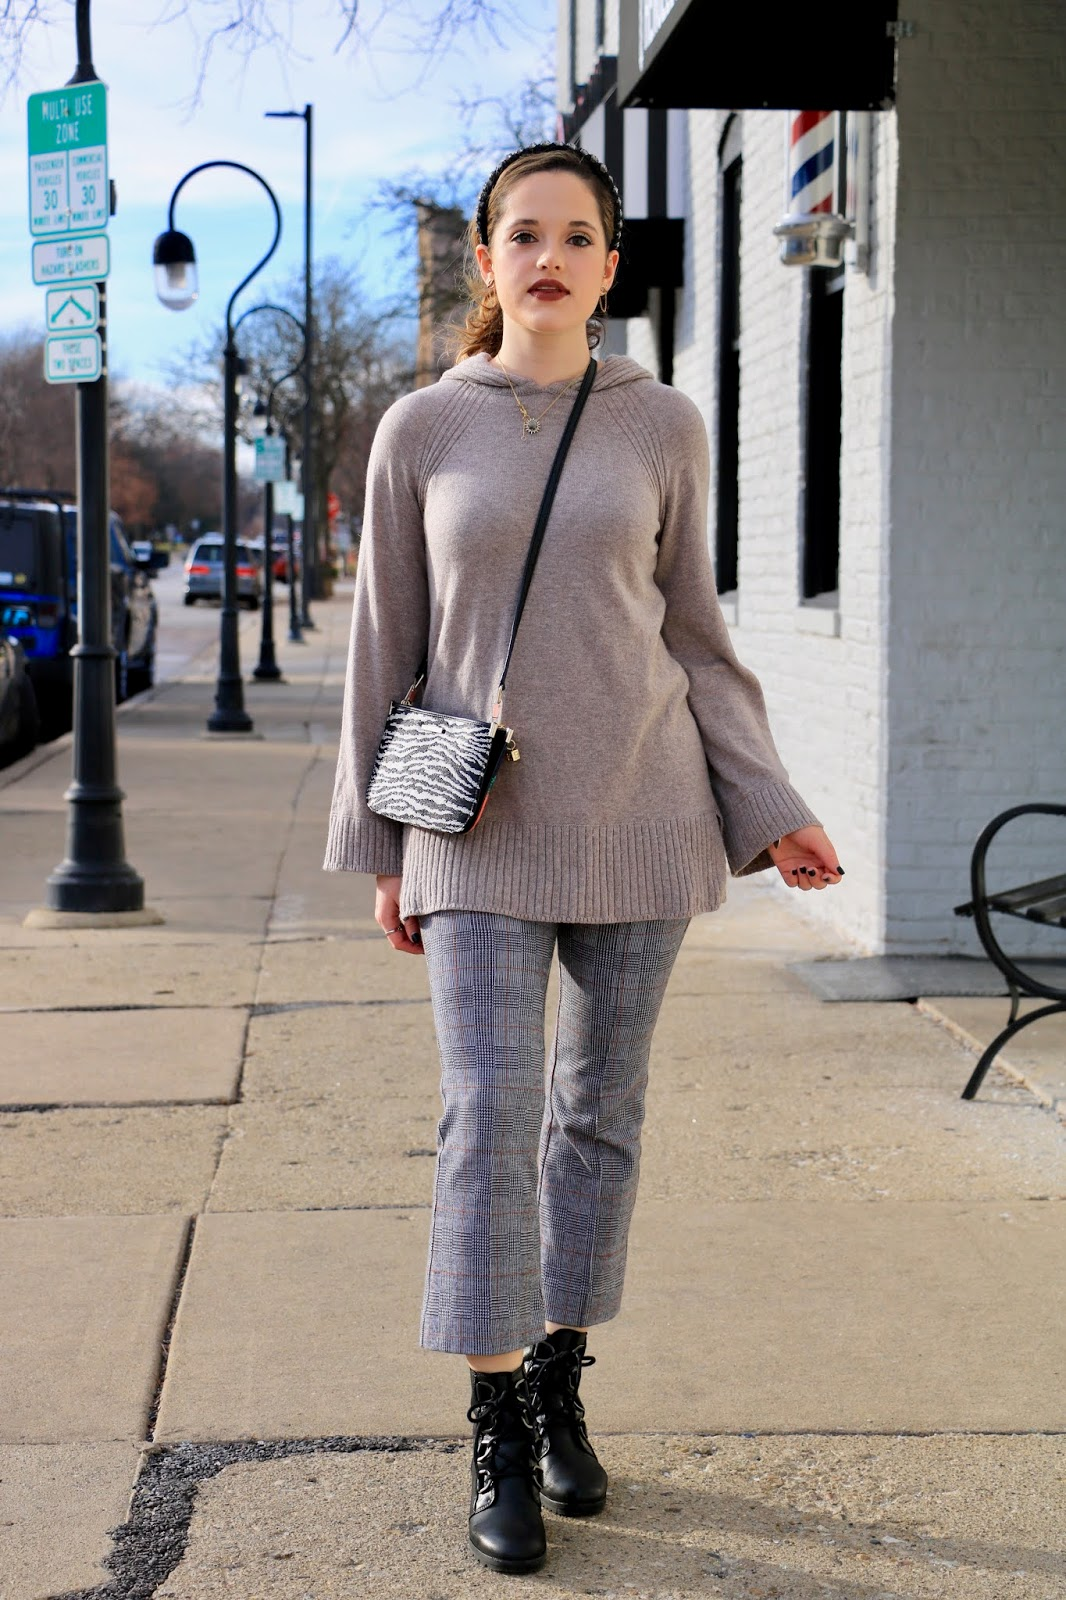 Nyc fashion blogger Kathleen Harper wearing a casual winter outfit.